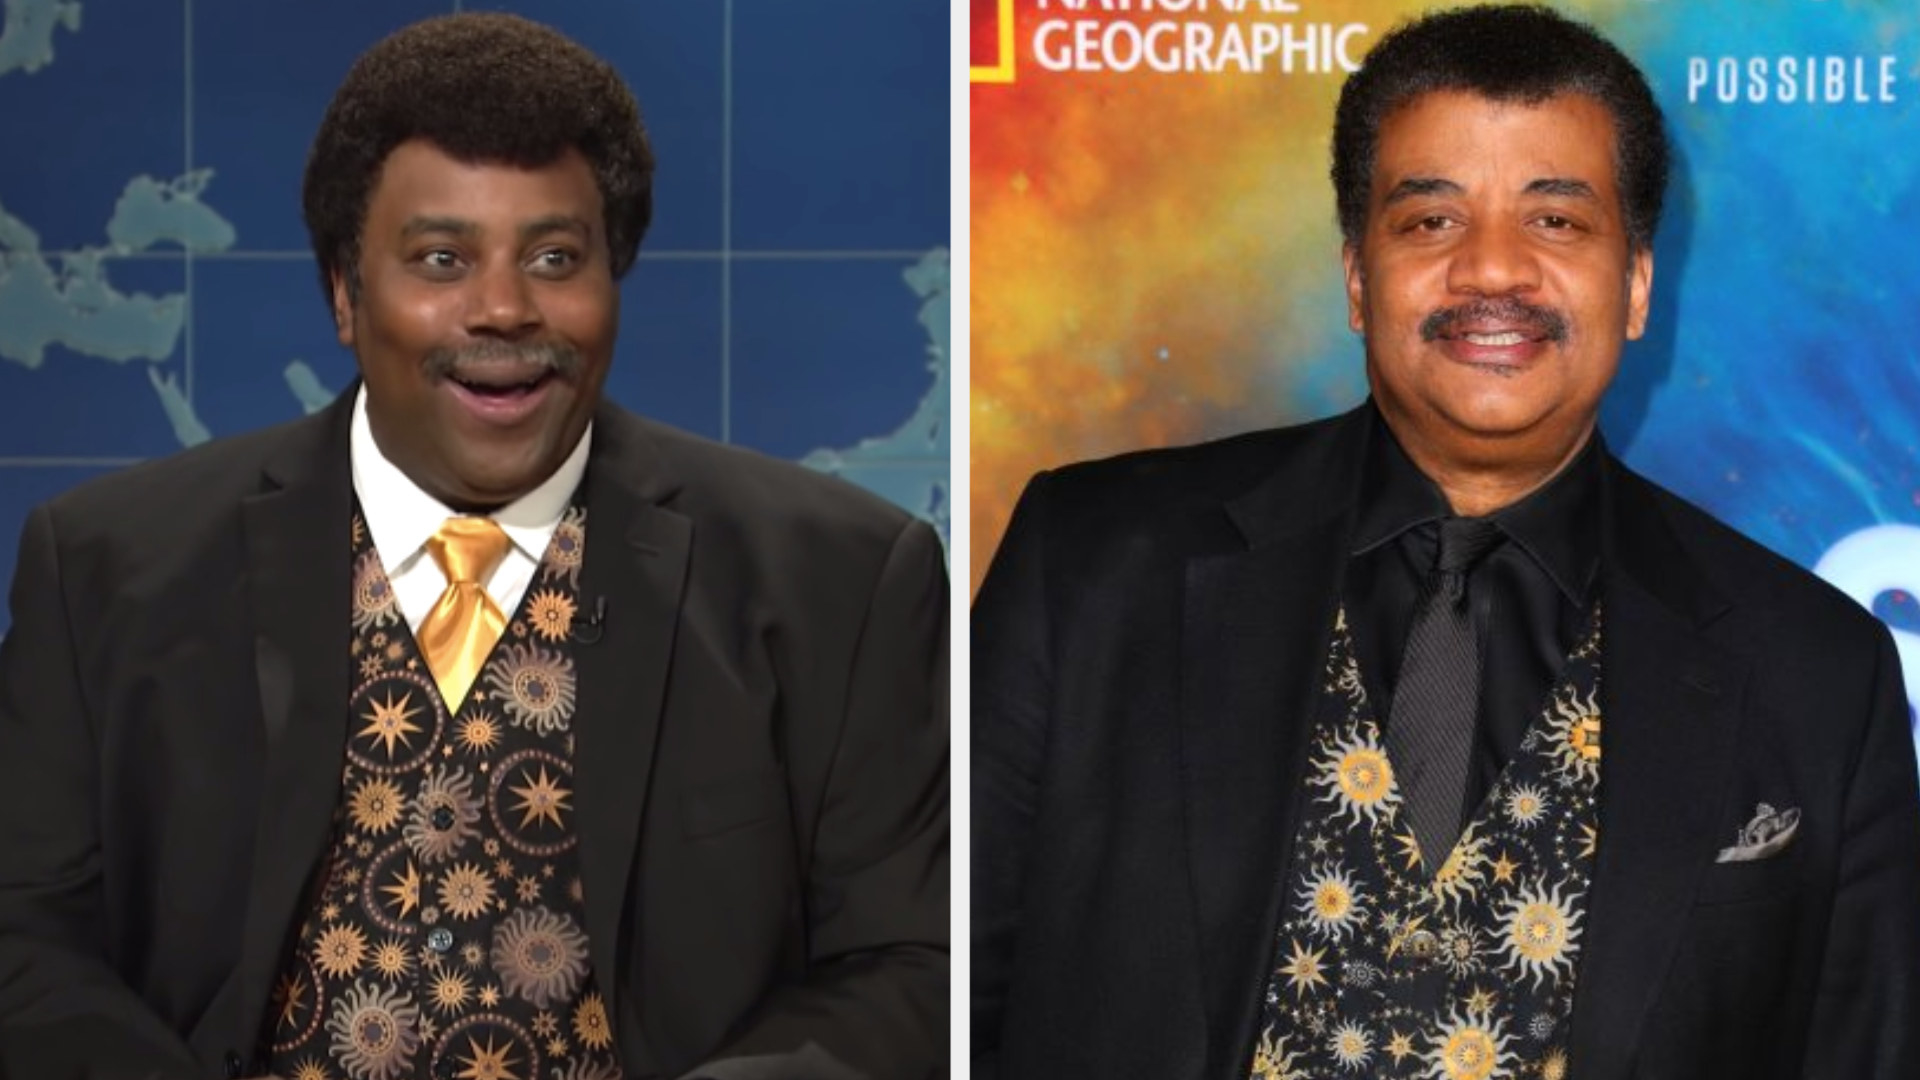 Kenan Thompson wearing a sun and stars vest under a suit jacket side by side with Neil deGrasse Tyson wearing the exact same outfit